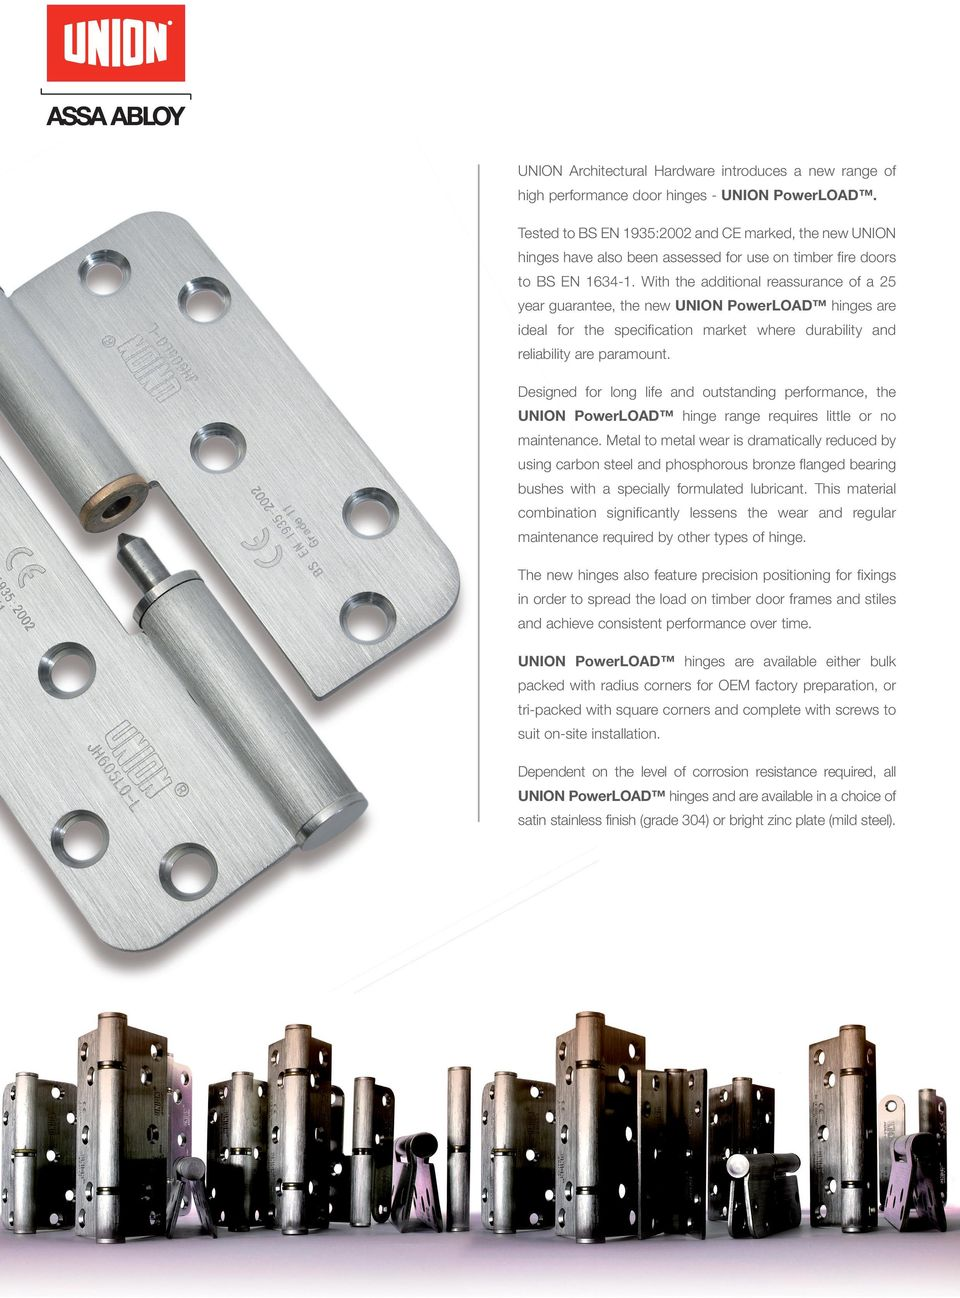 With the additional reassurance of a 25 year guarantee, the new UNION PowerLOAD hinges are ideal for the specification market where durability and reliability are paramount.